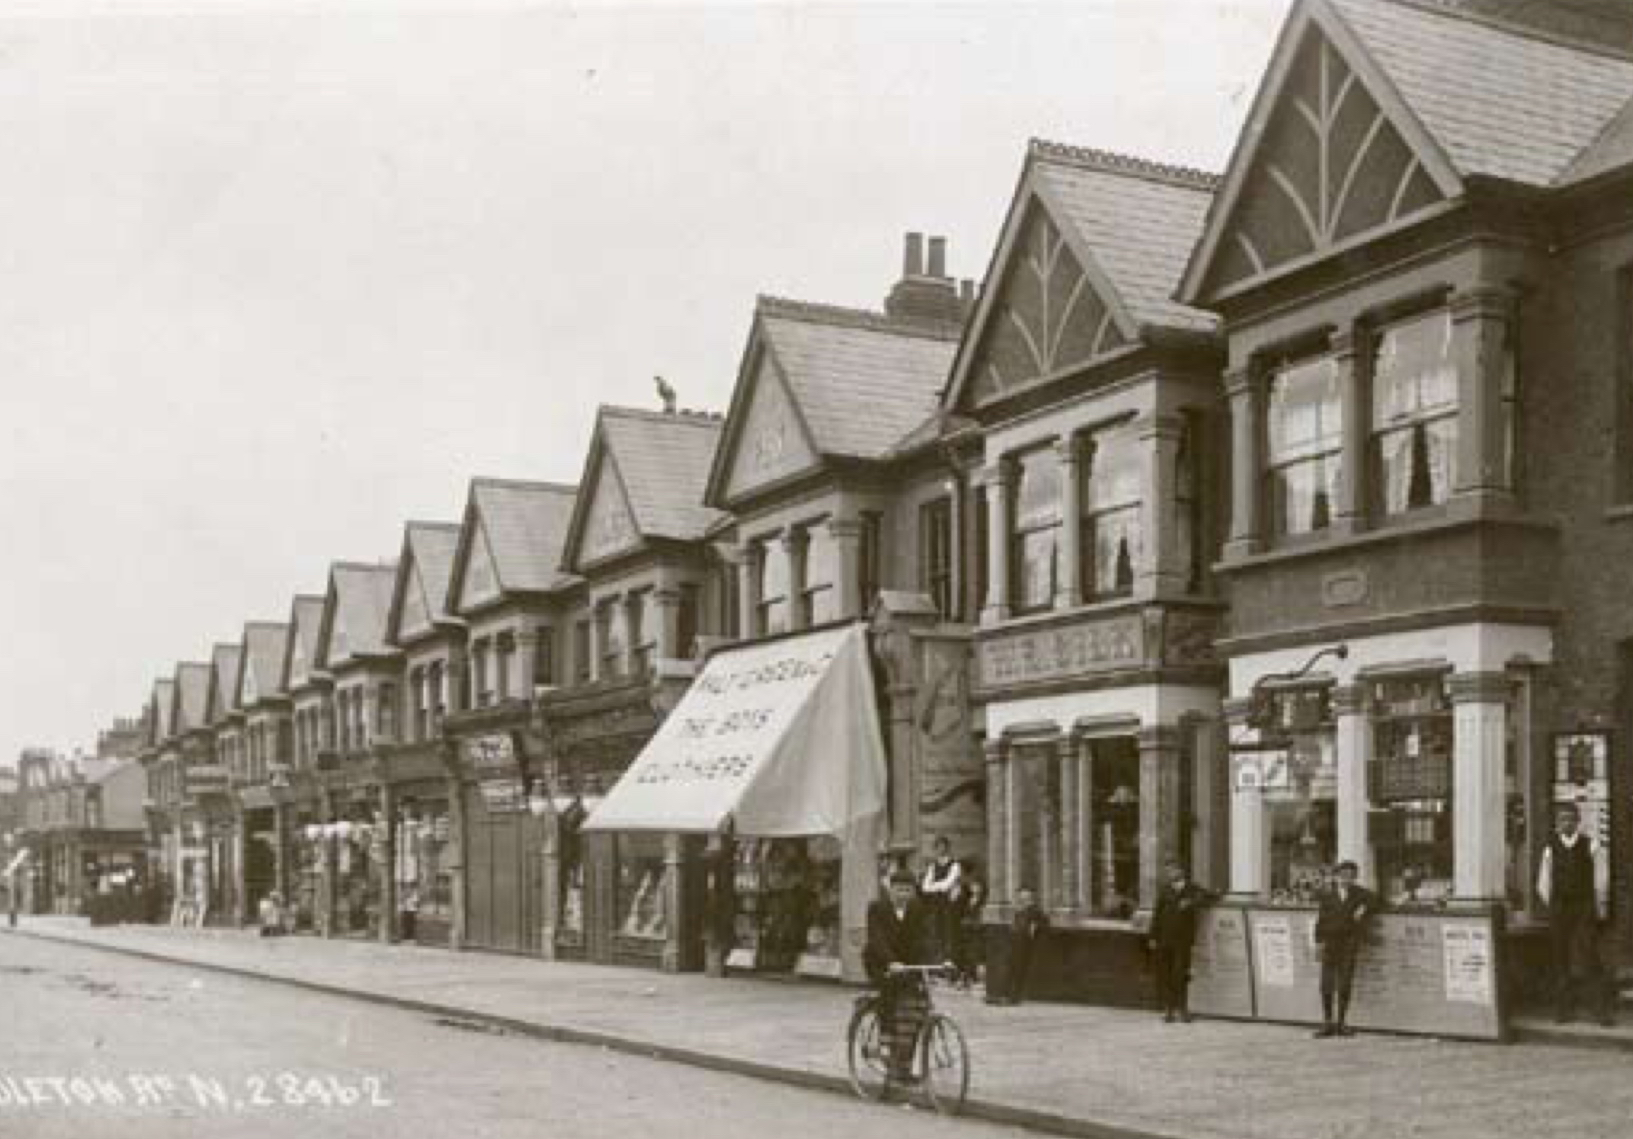 Myddleton Road in the 1900s, number 99 is the one with an awning